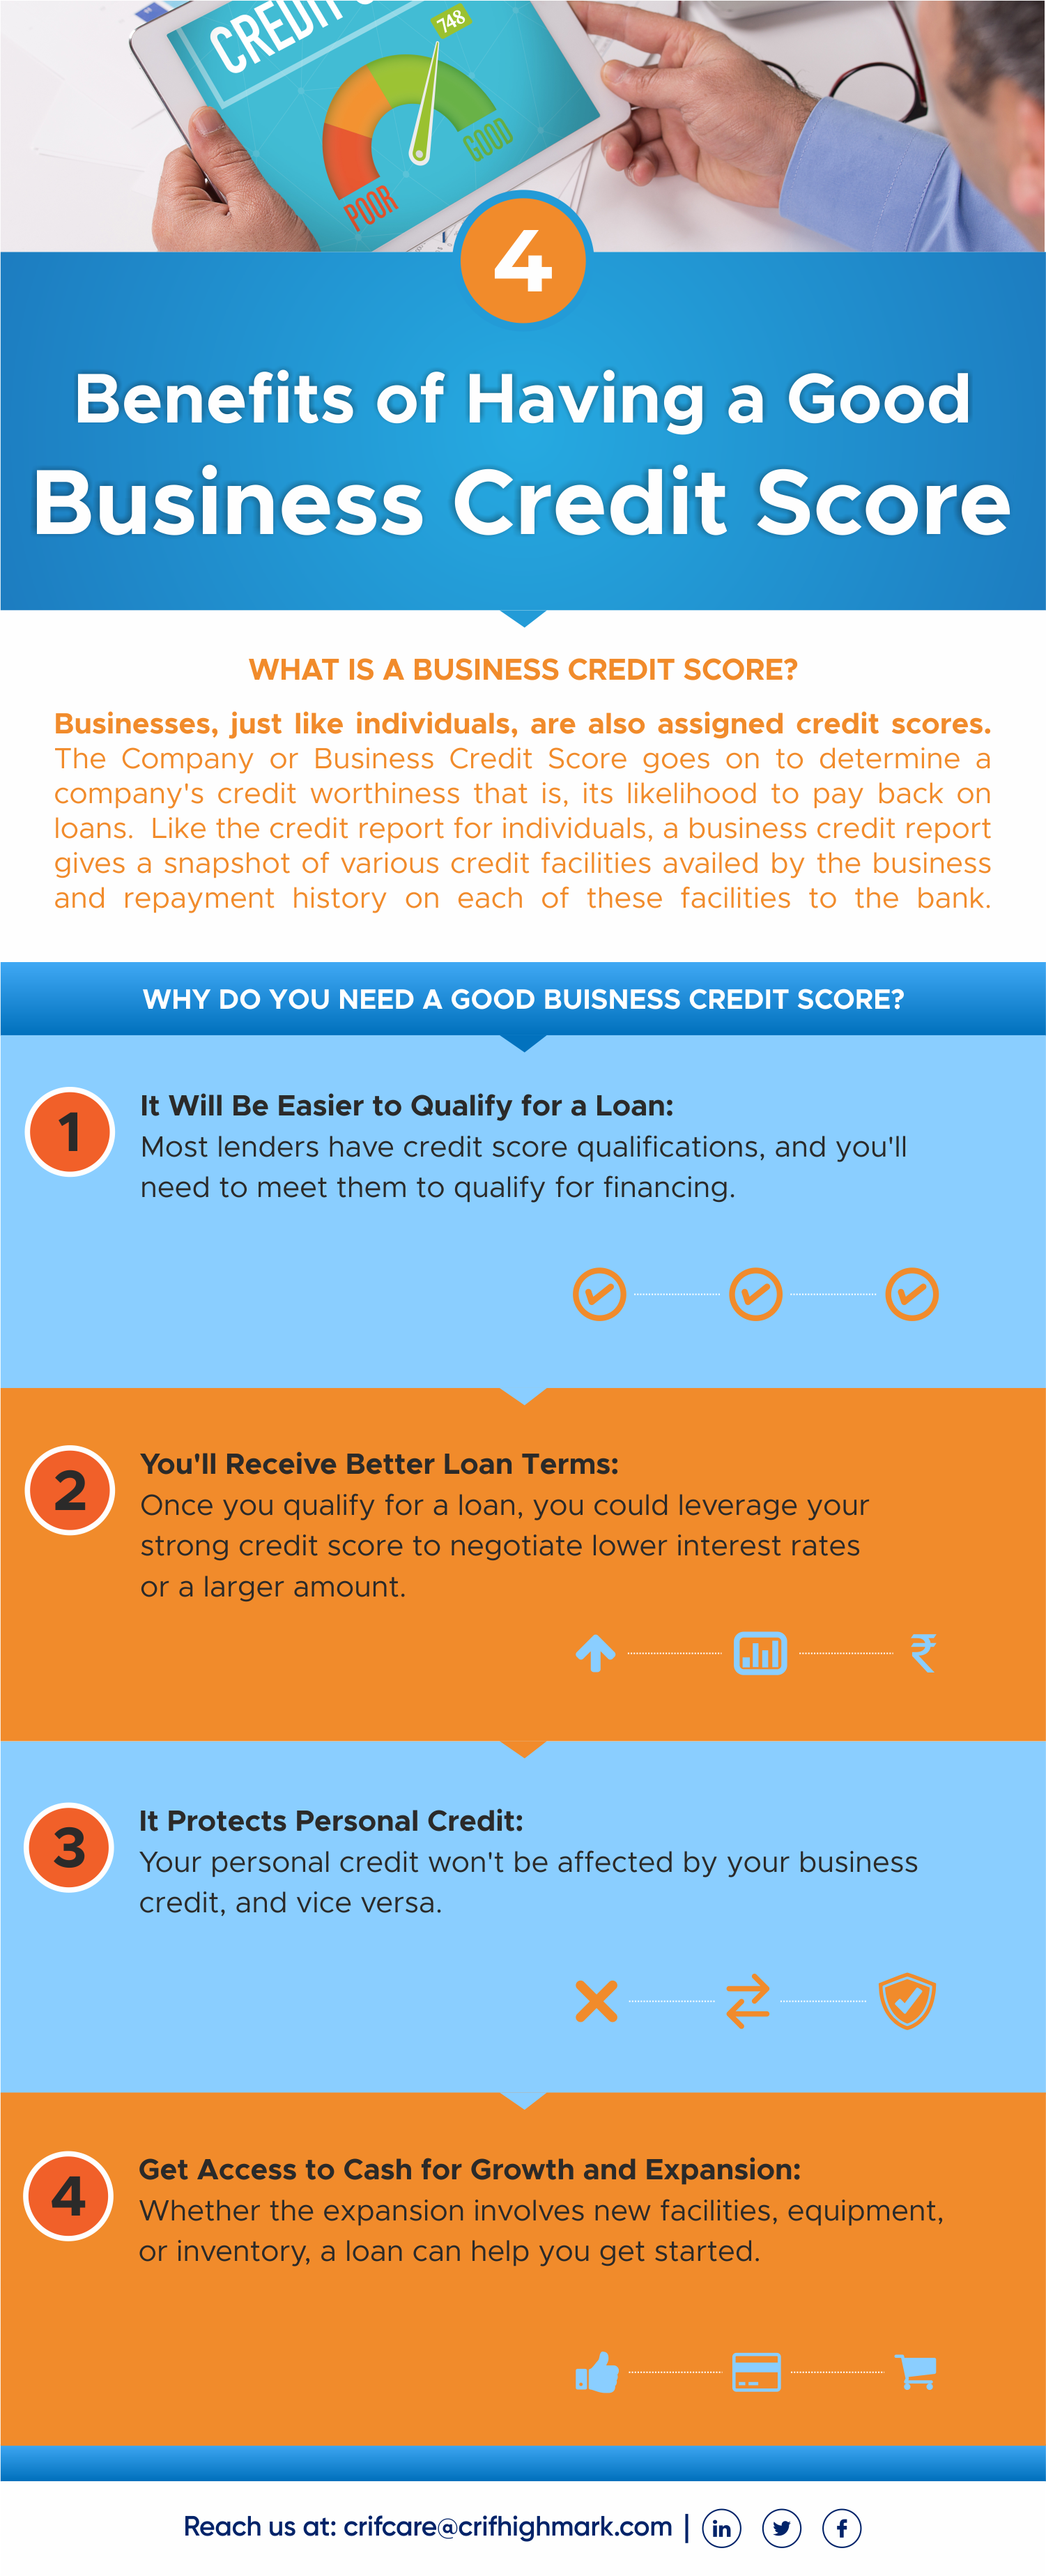 Benefits Of A Good Business Credit Score Include Being Able To Easily Qualify For A Loan Receiving Better Loan Terms P Credit Score Credit Bureaus Best Loans